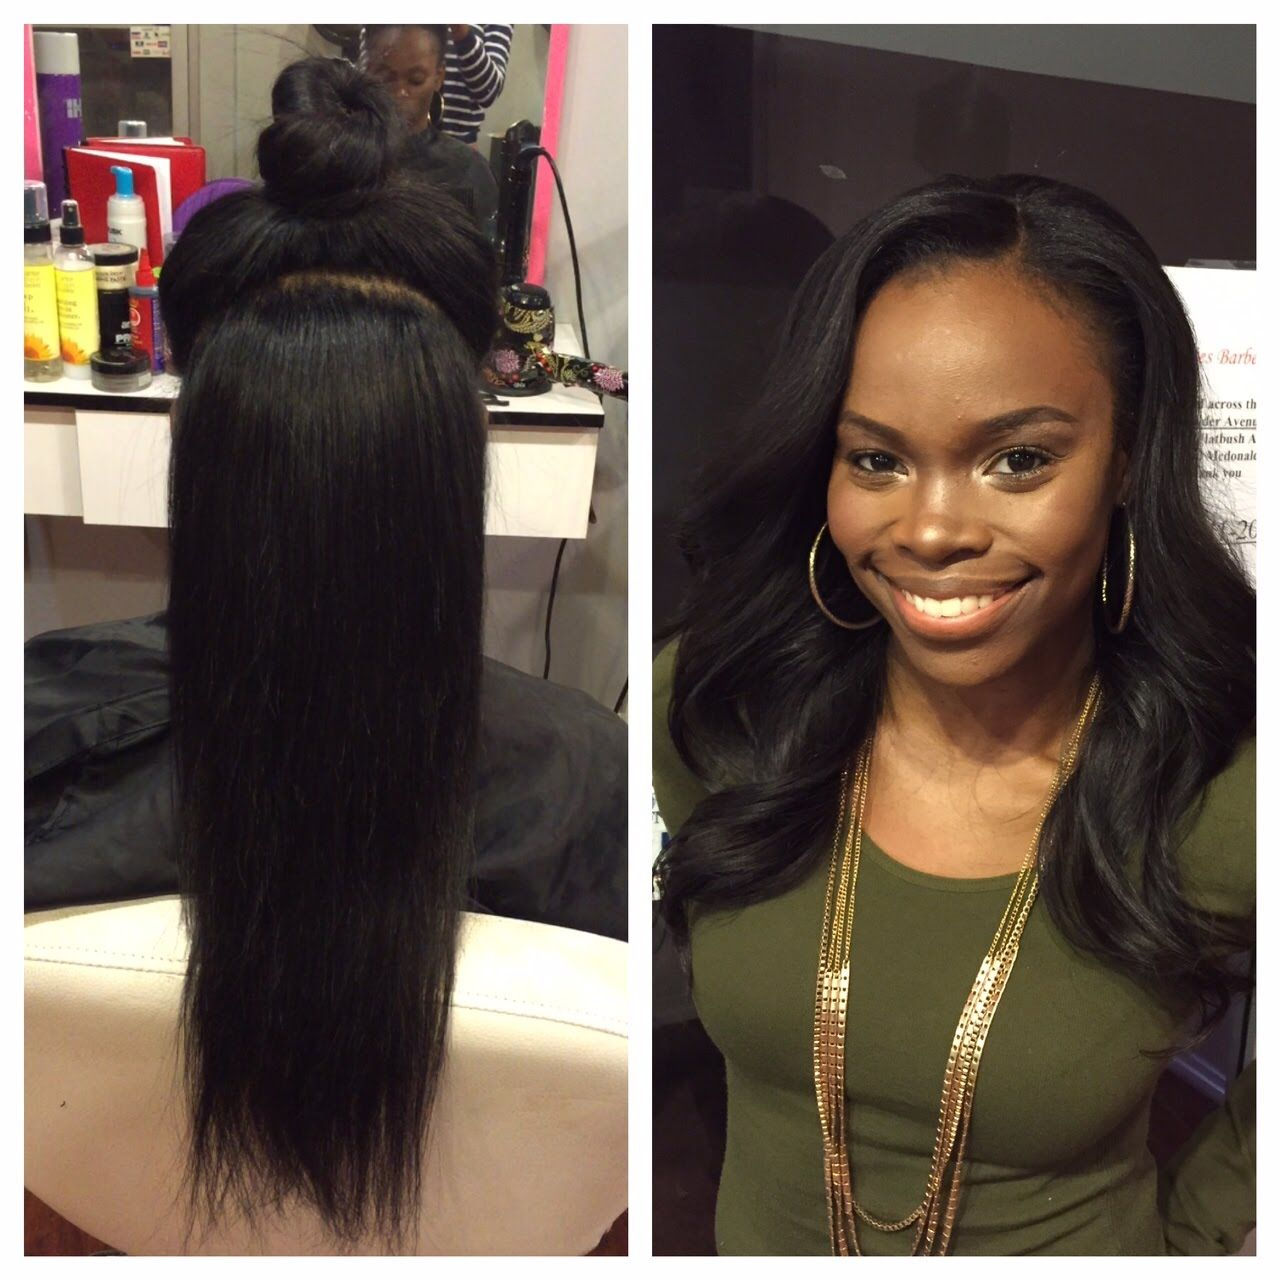 Vixen Two Part Sewin Weave Tutorial By @nynystyle